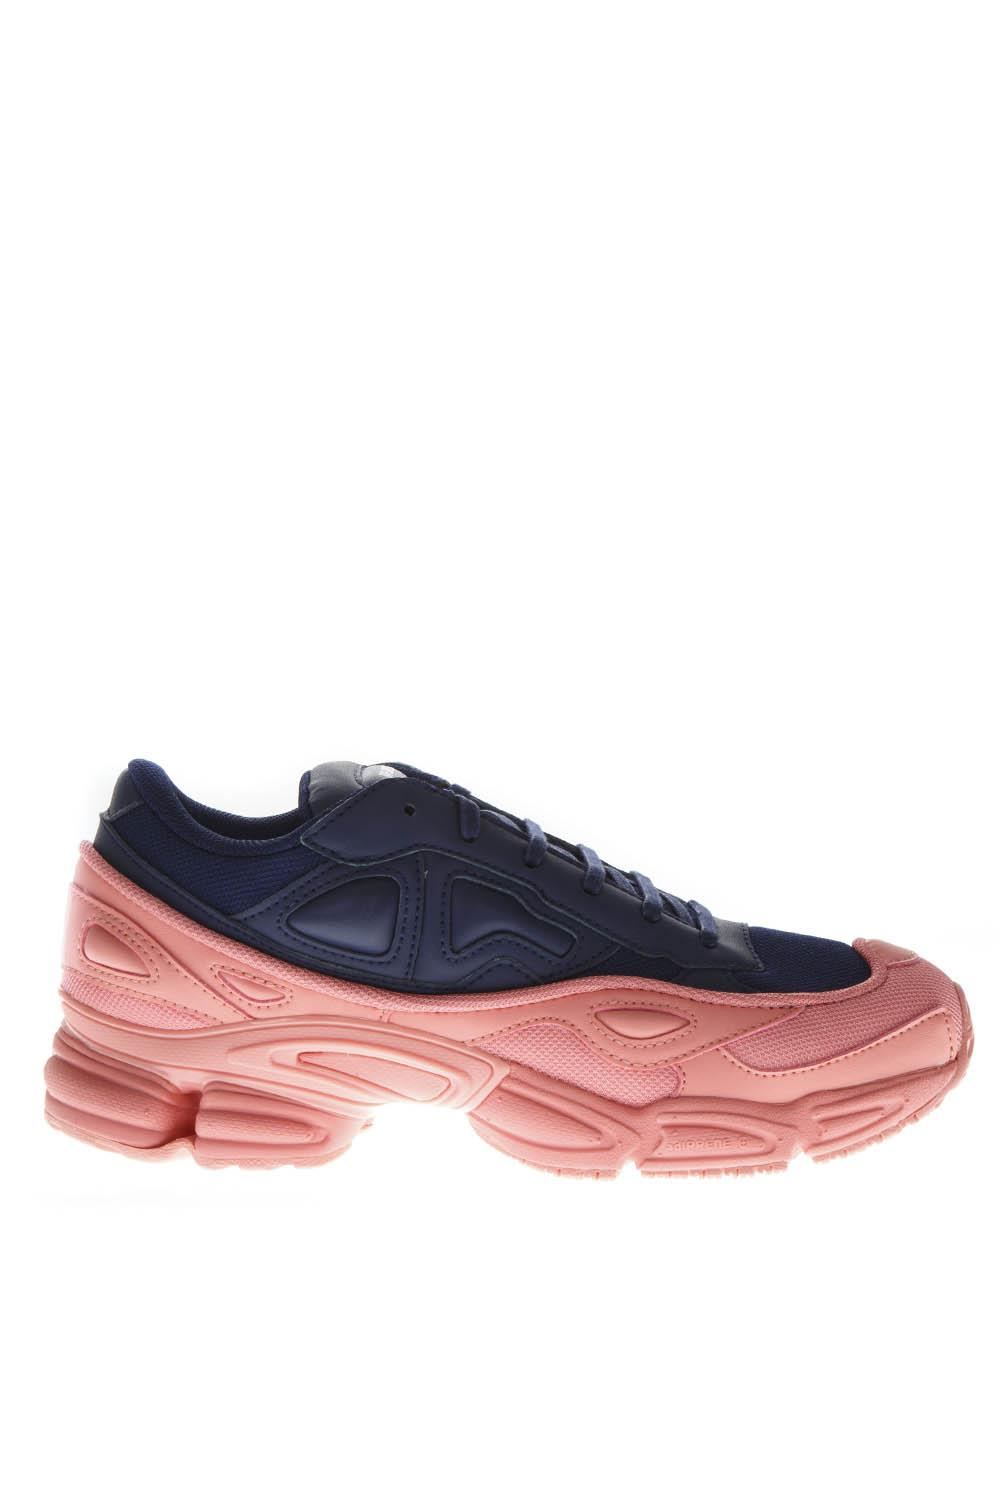 finest selection 9ddf0 11ff2 RS OZWEEGO SNEAKERS IN BLUE & PINK LEATHER FW 2018